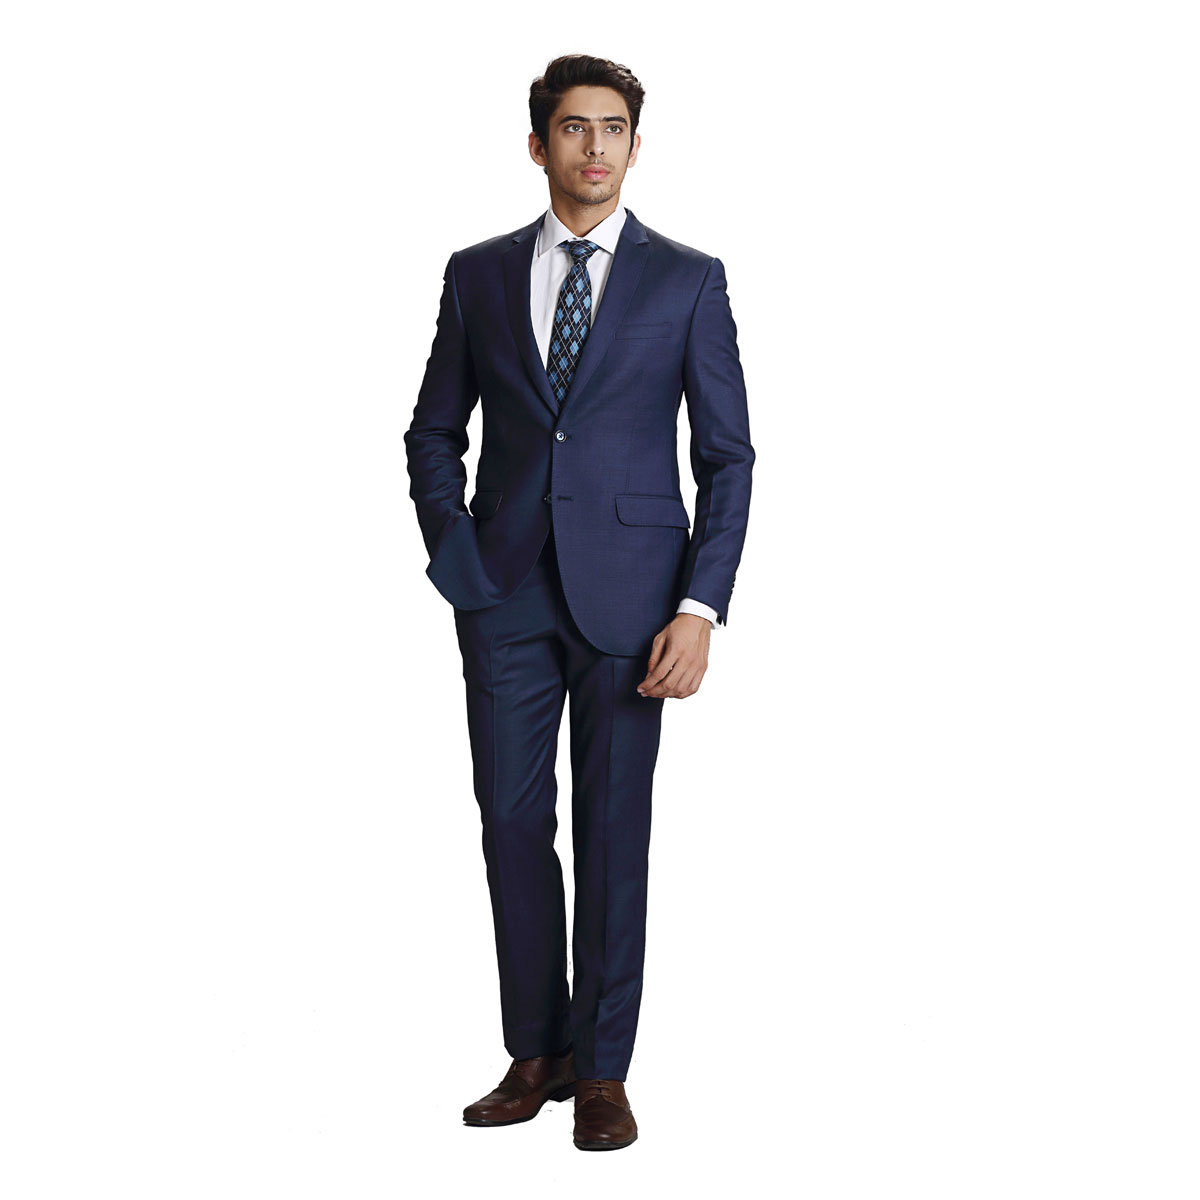 Out Of The Blue Suit - Best Bespoke Suits. Premium Custom Tailored